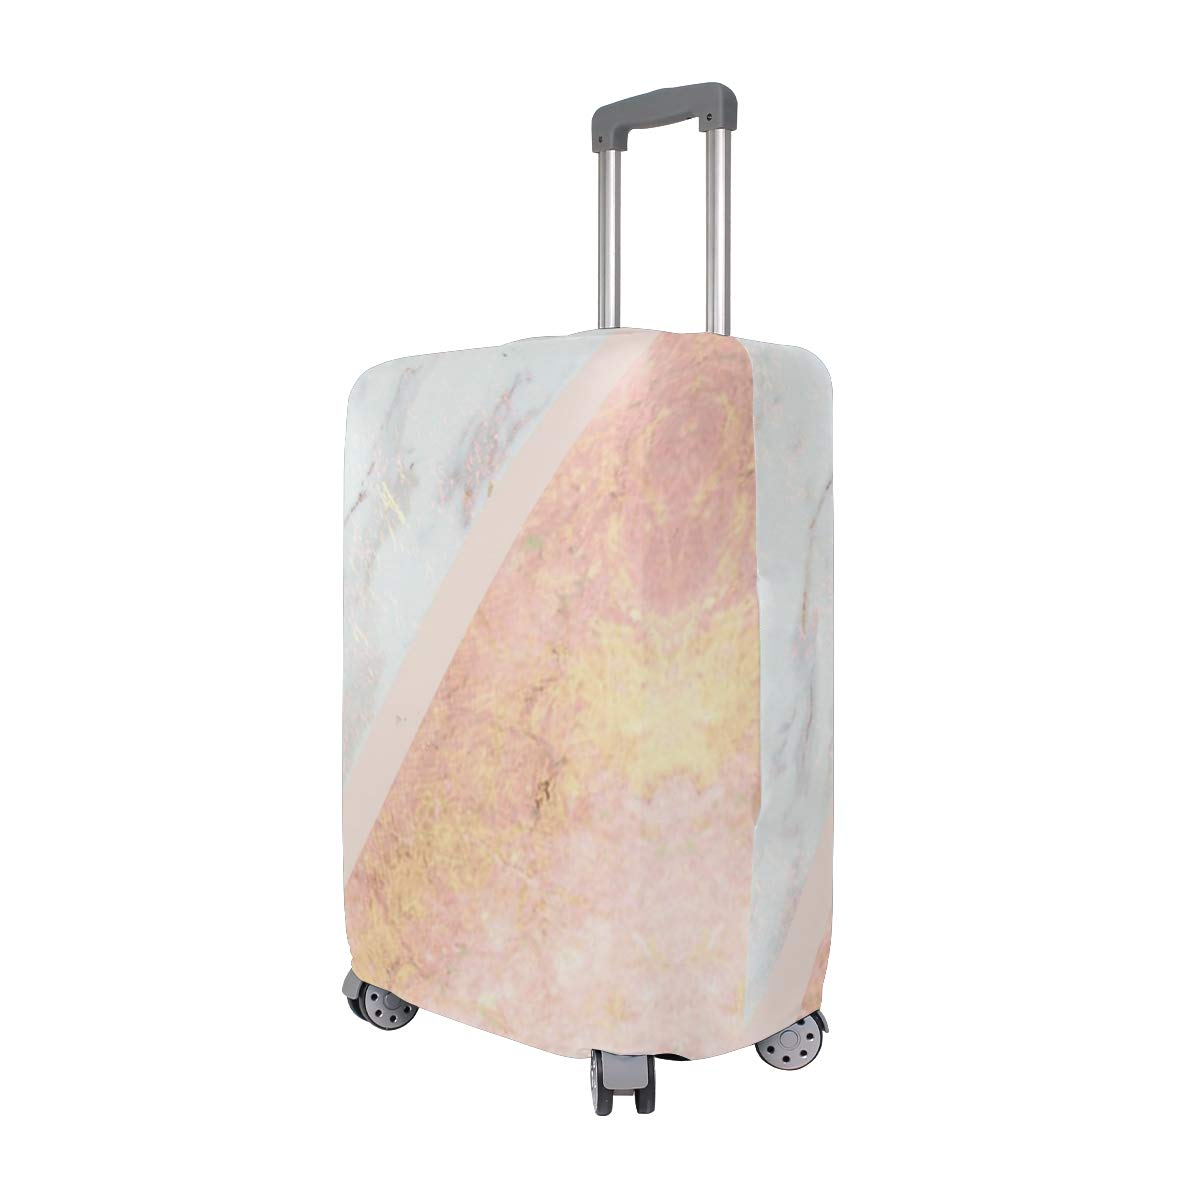 Marble Rose Gold Traveler Lightweight Rotating Luggage Cover Can Carry With You Can Expand Travel Bag Trolley Rolling Luggage Cover